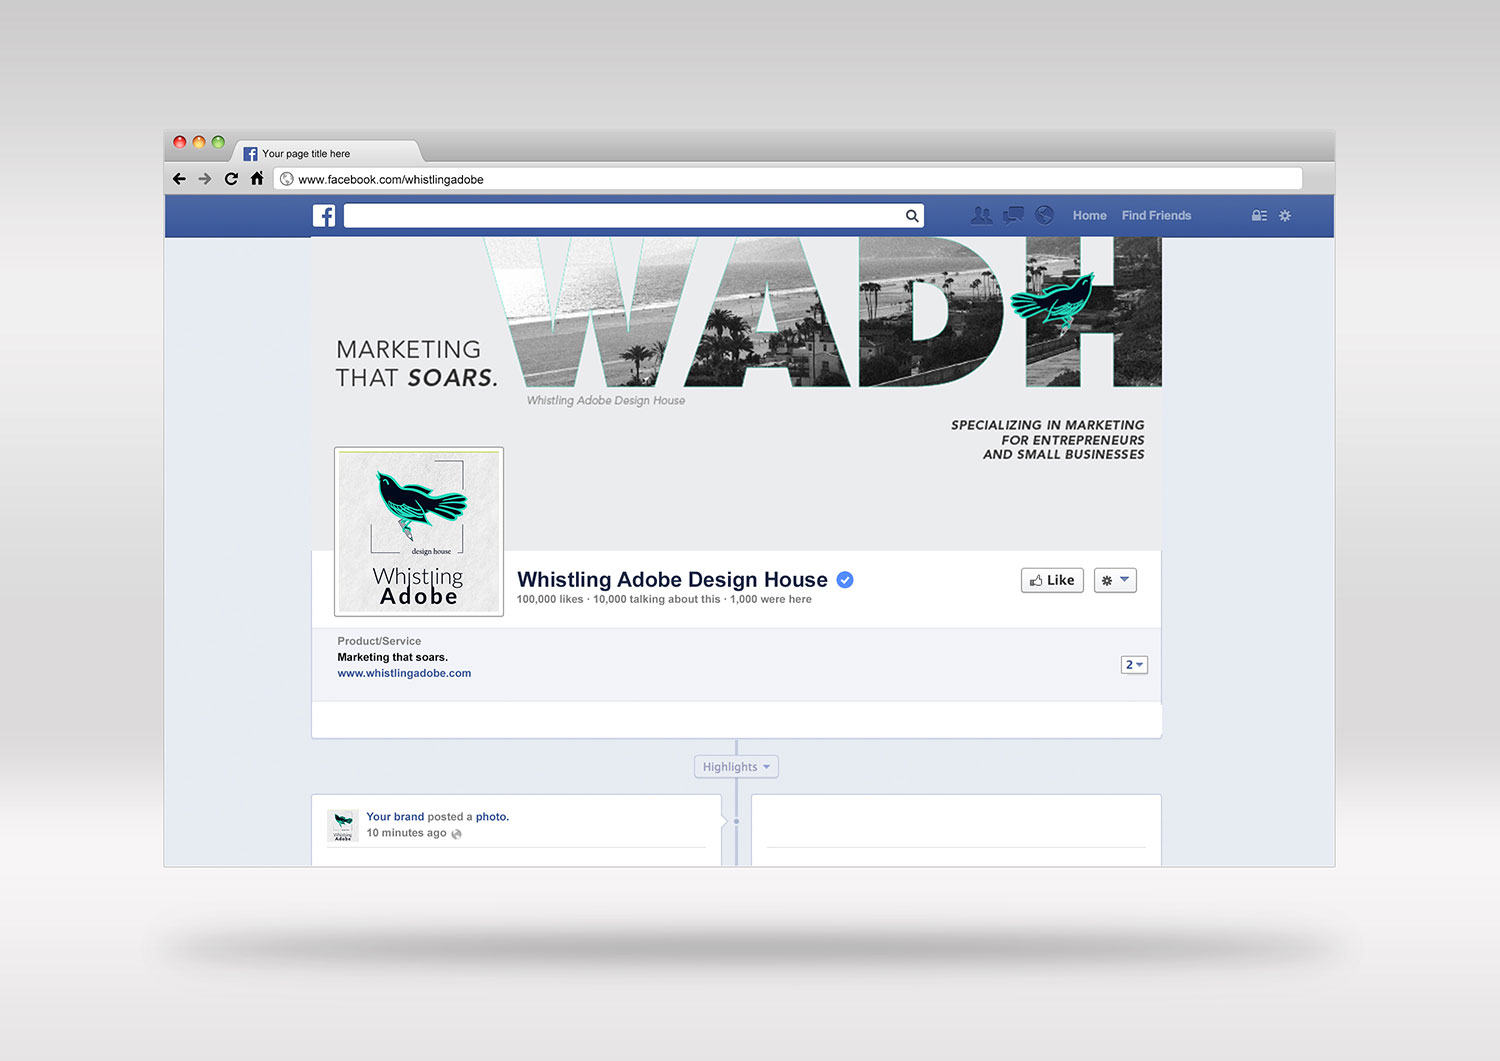 wadh-facebook-mock-up2.jpg